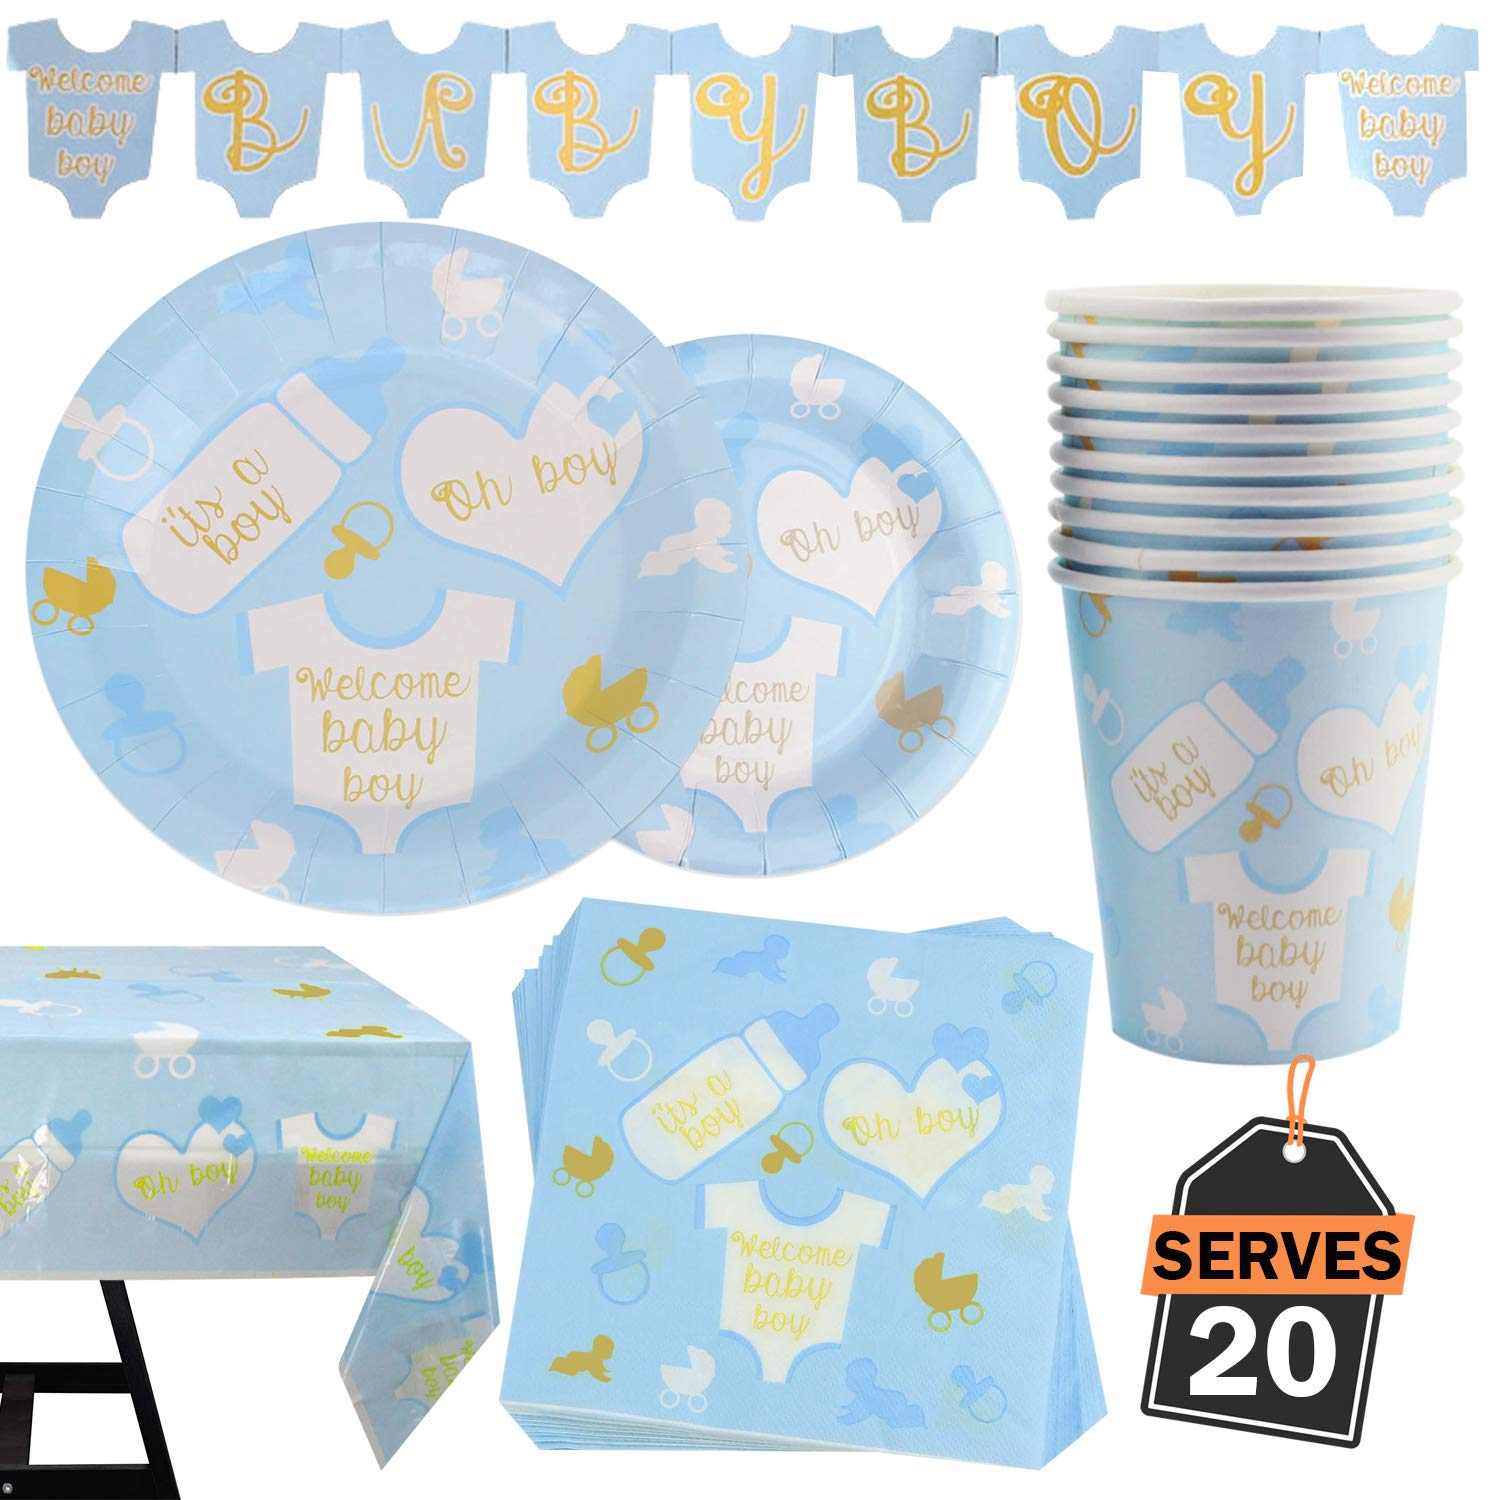 82 Piece Baby Boy Shower Party Supplies Set Including Plates, Cups, Table Napkins, Tablecloth and Banner, Serves 20 by Scale Rank